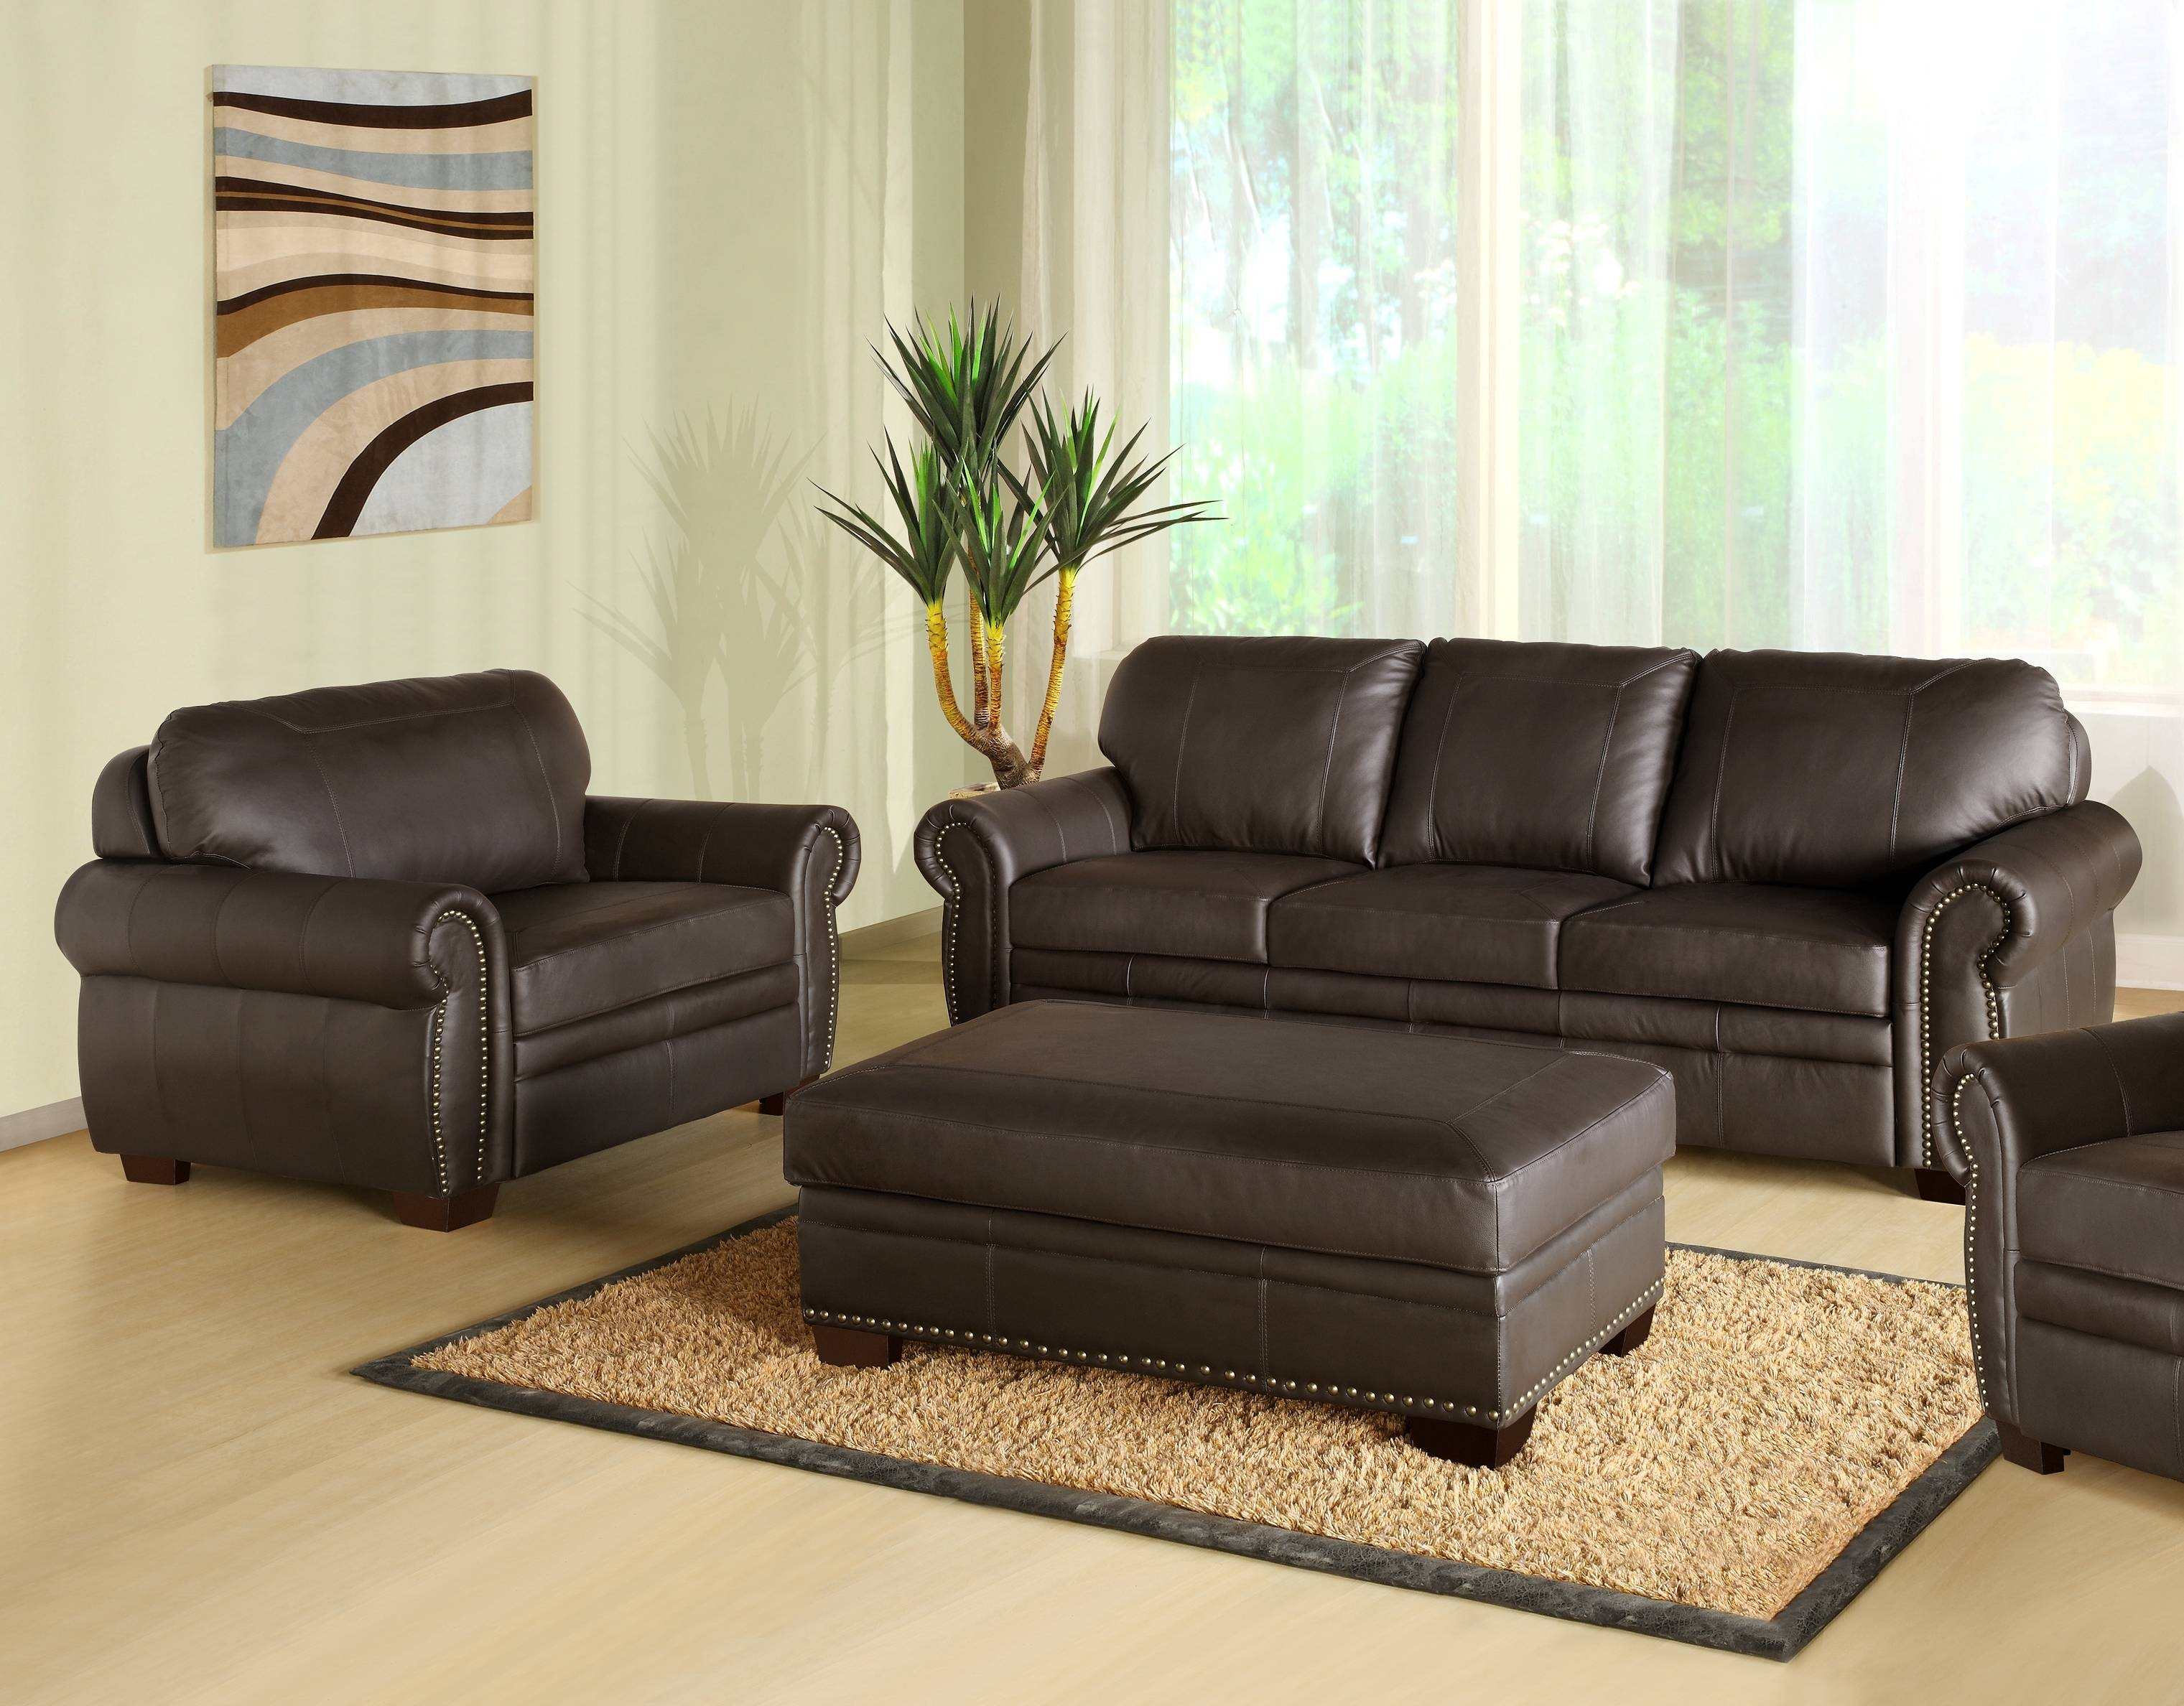 Large Leather Sofas And Montana Large Leather Sofa | The English for Large Sofa Chairs (Image 16 of 30)